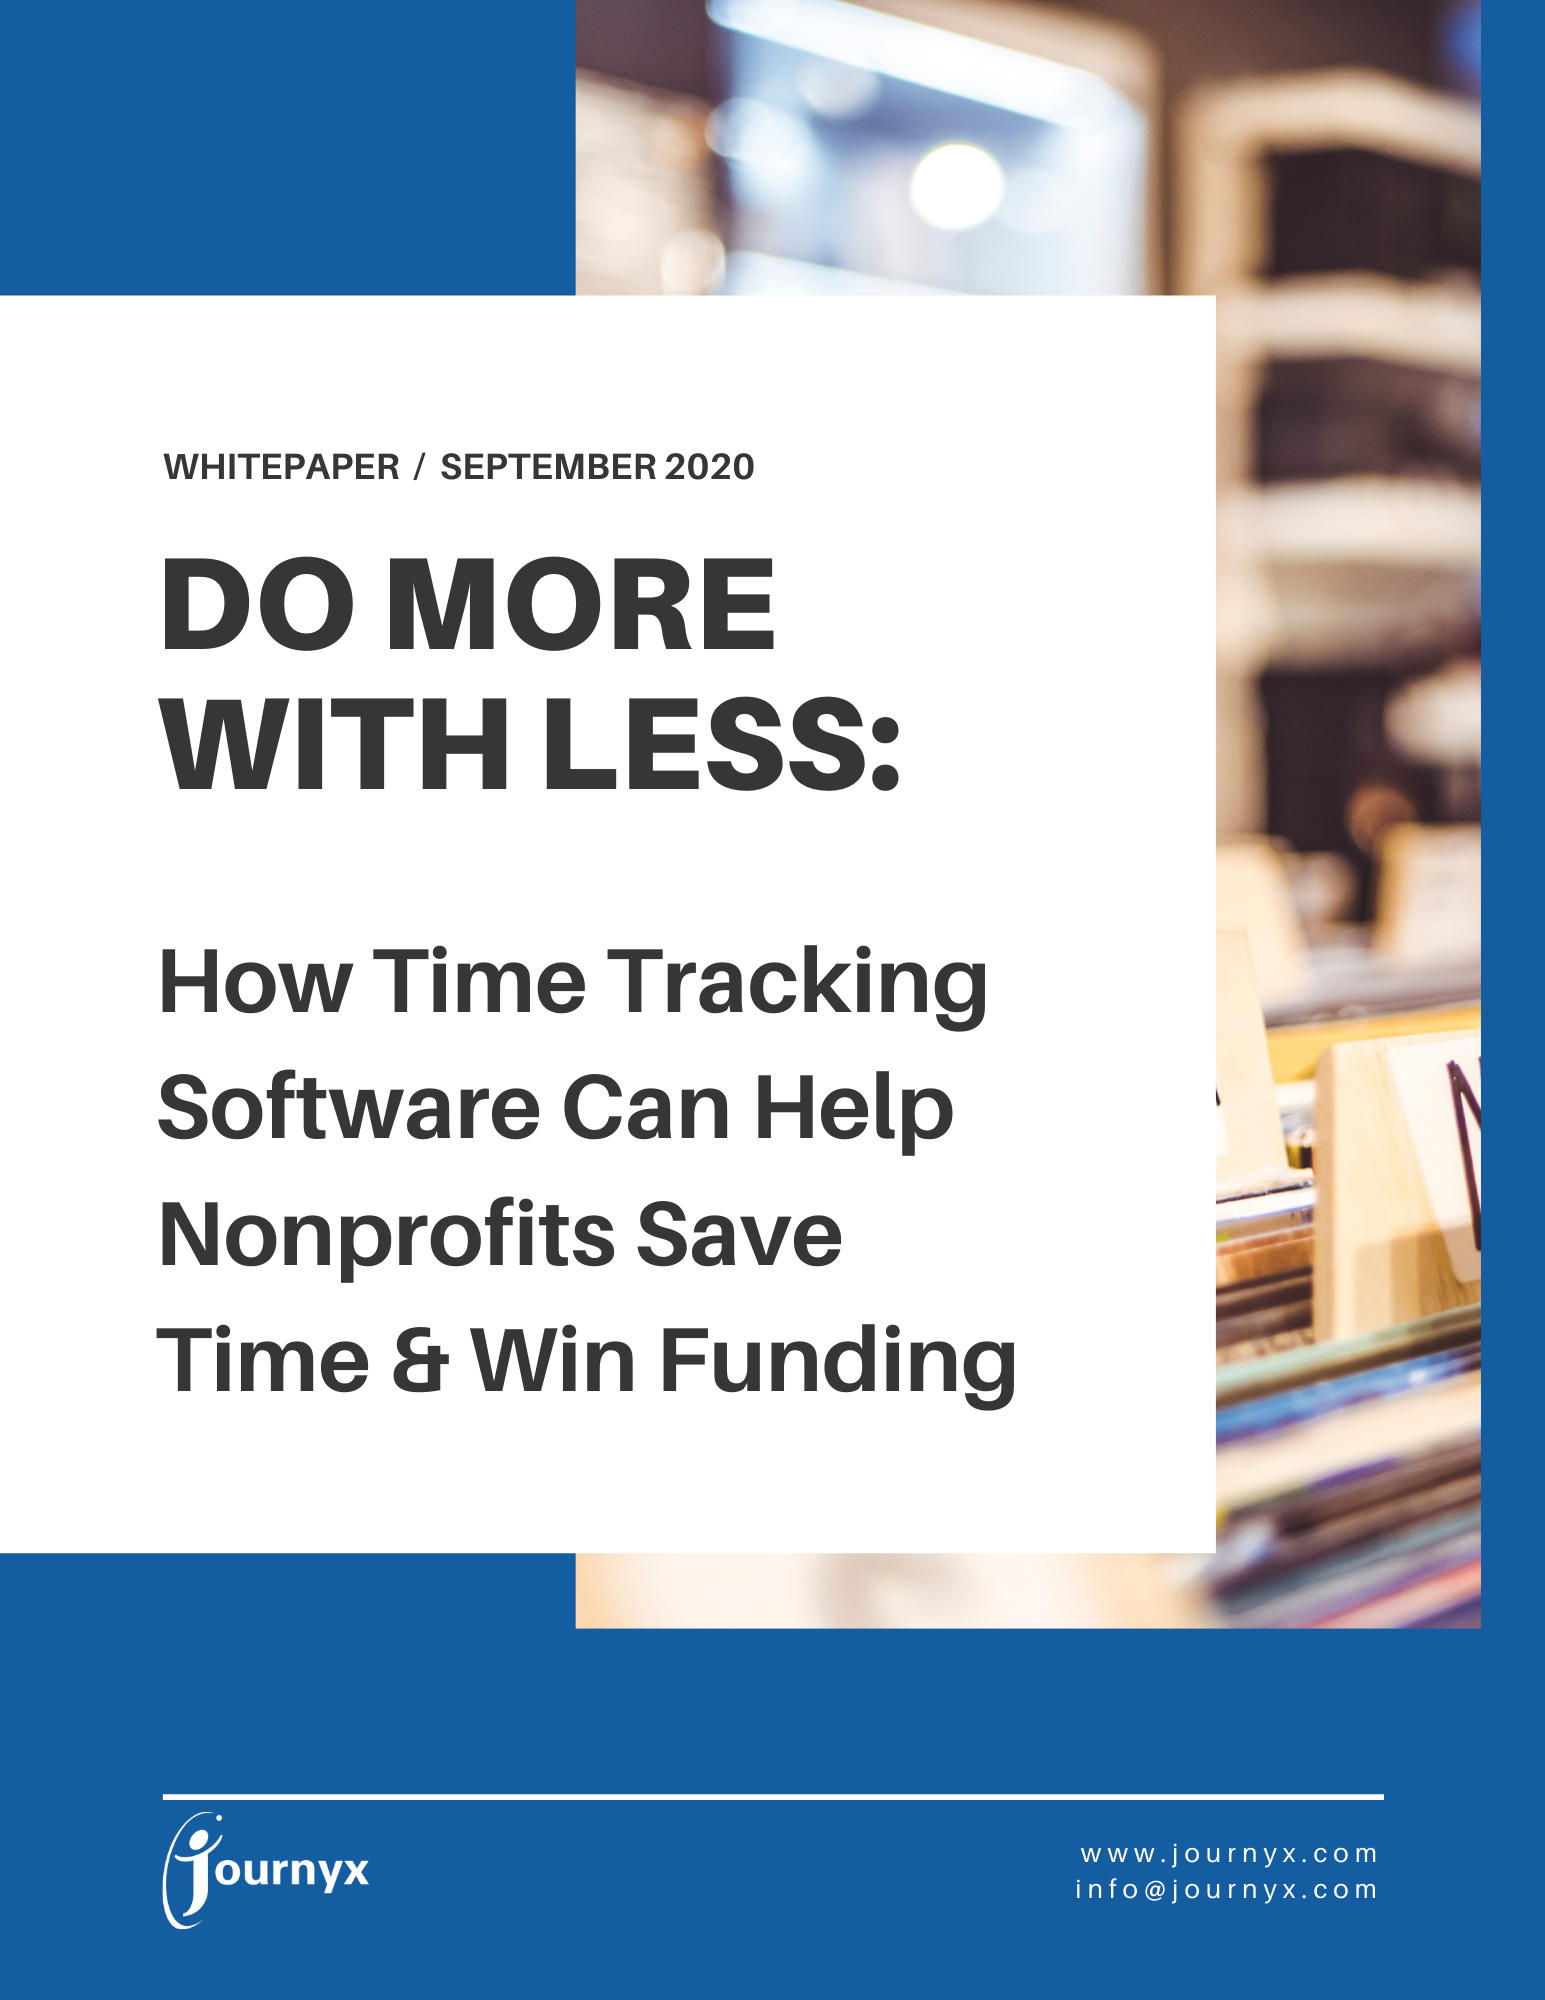 wp-how-time-tracking-software-can-help-nonprofits-save-time-and-win-funding